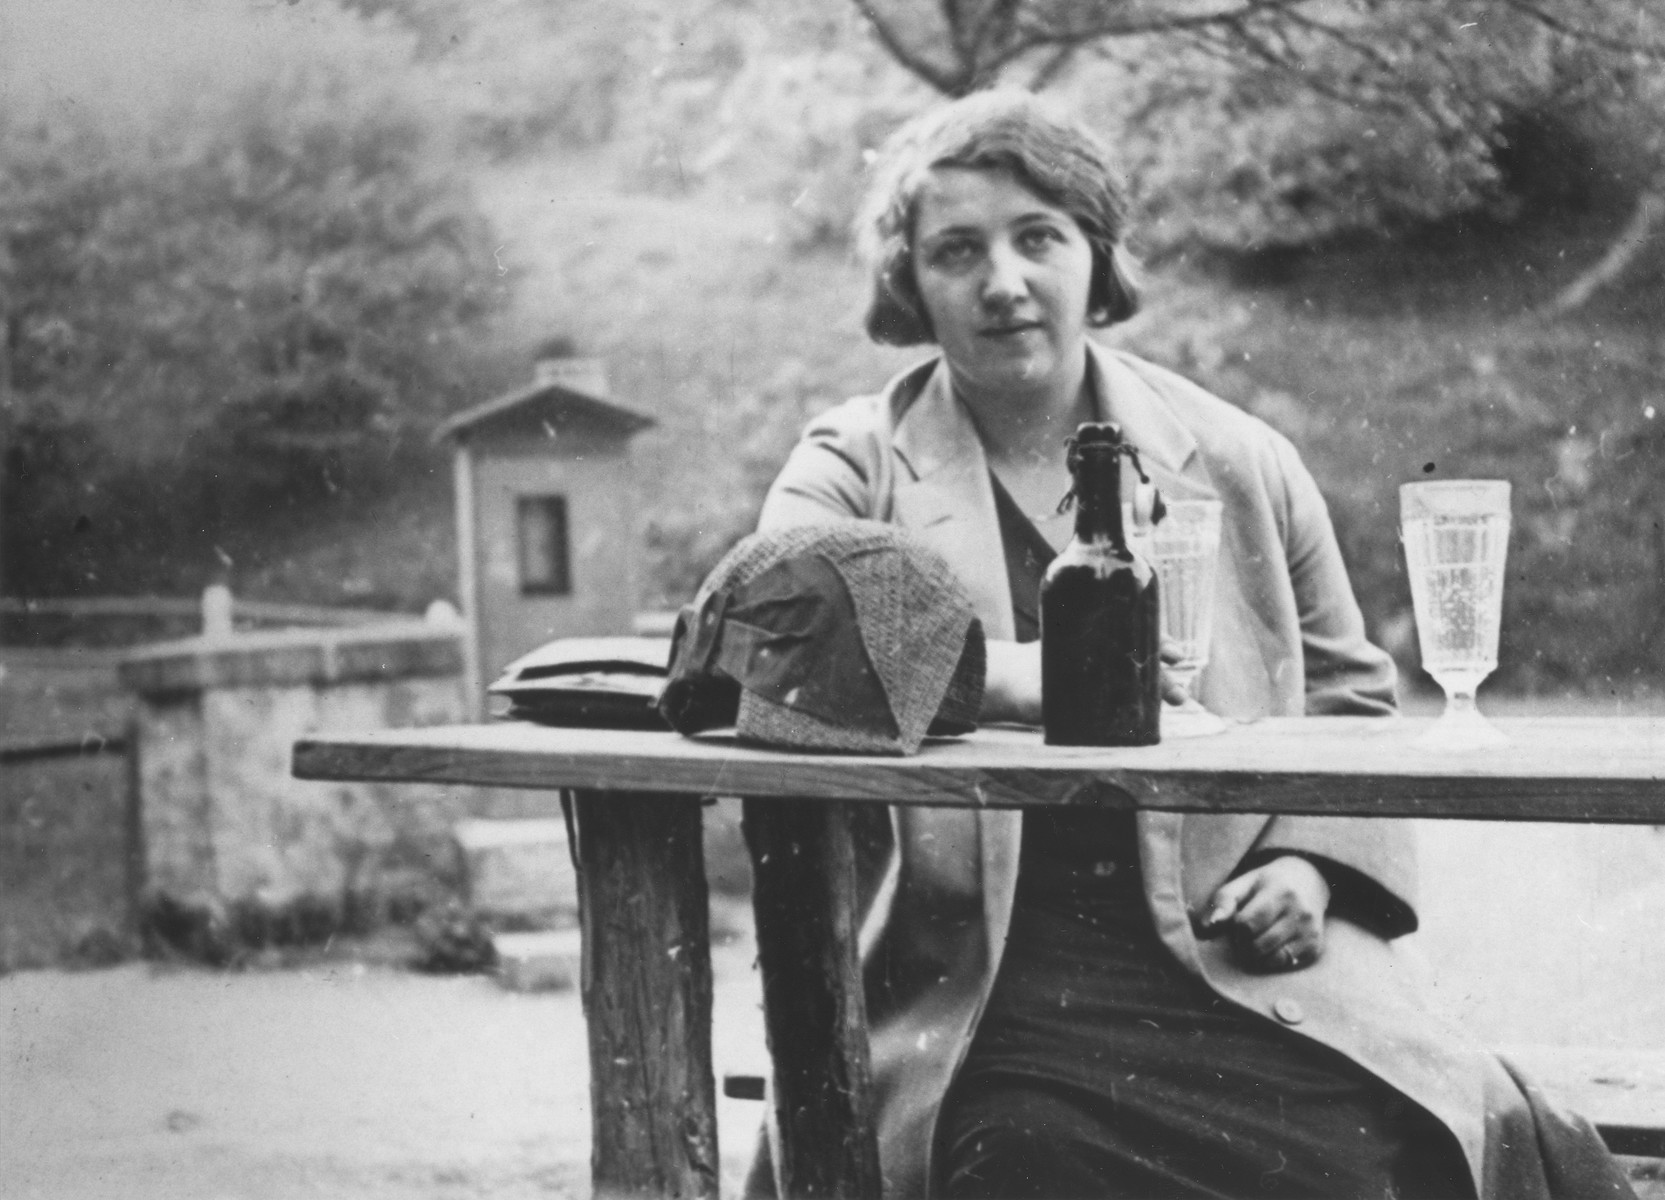 Greta Mayer sits at an outdoor table set with a loaf of bread and a bottle of wine.